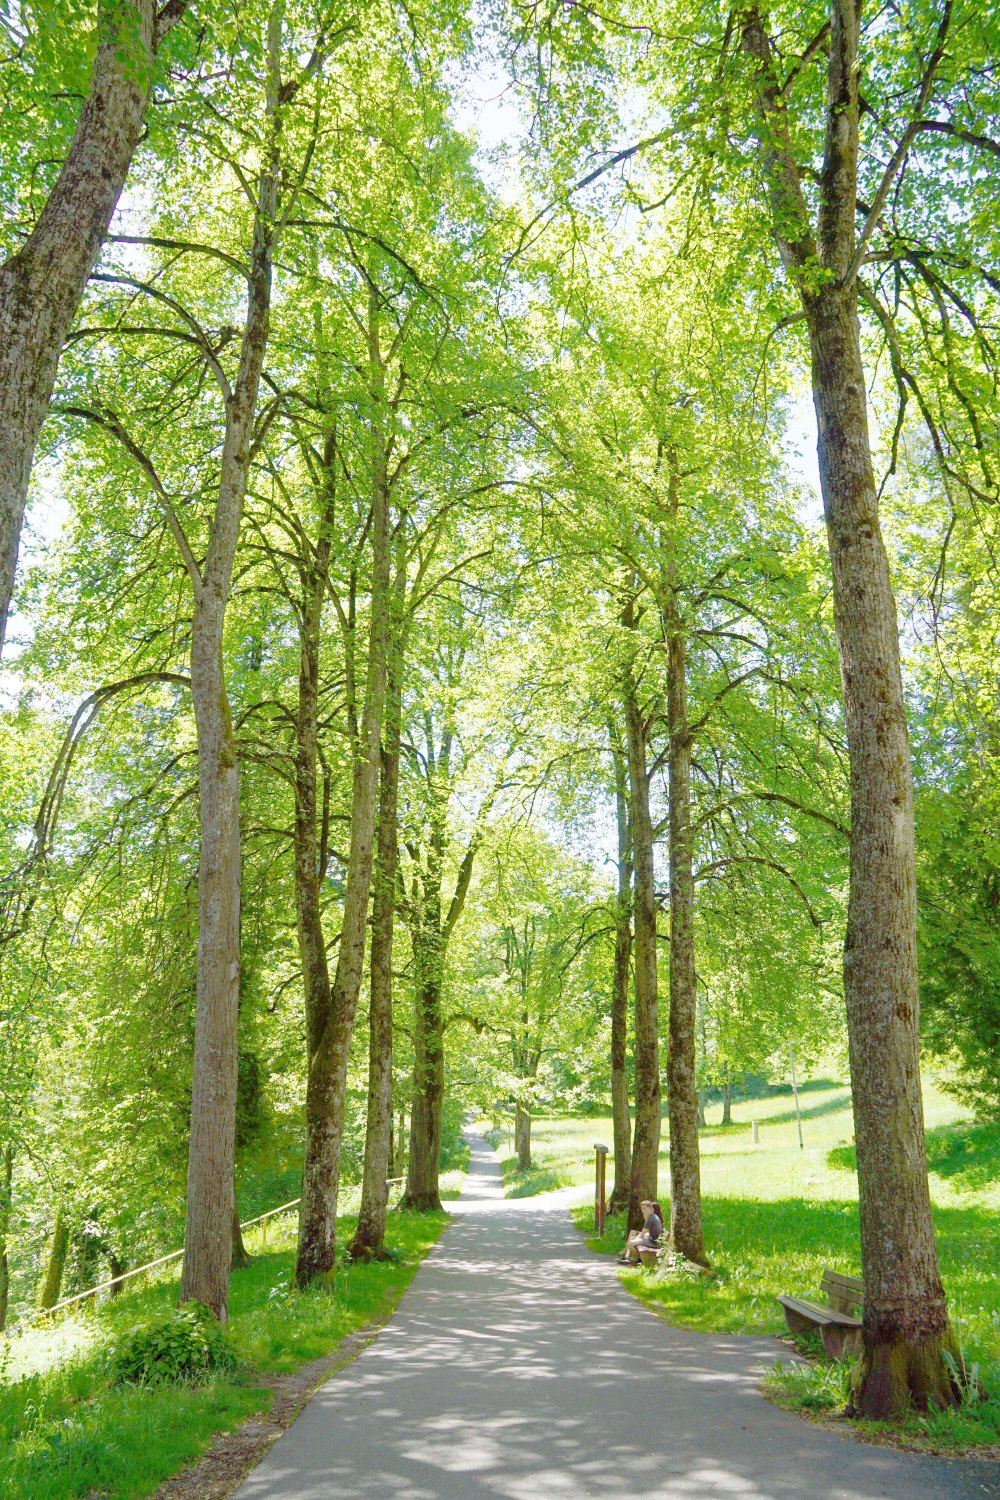 Green pathway filled with trees